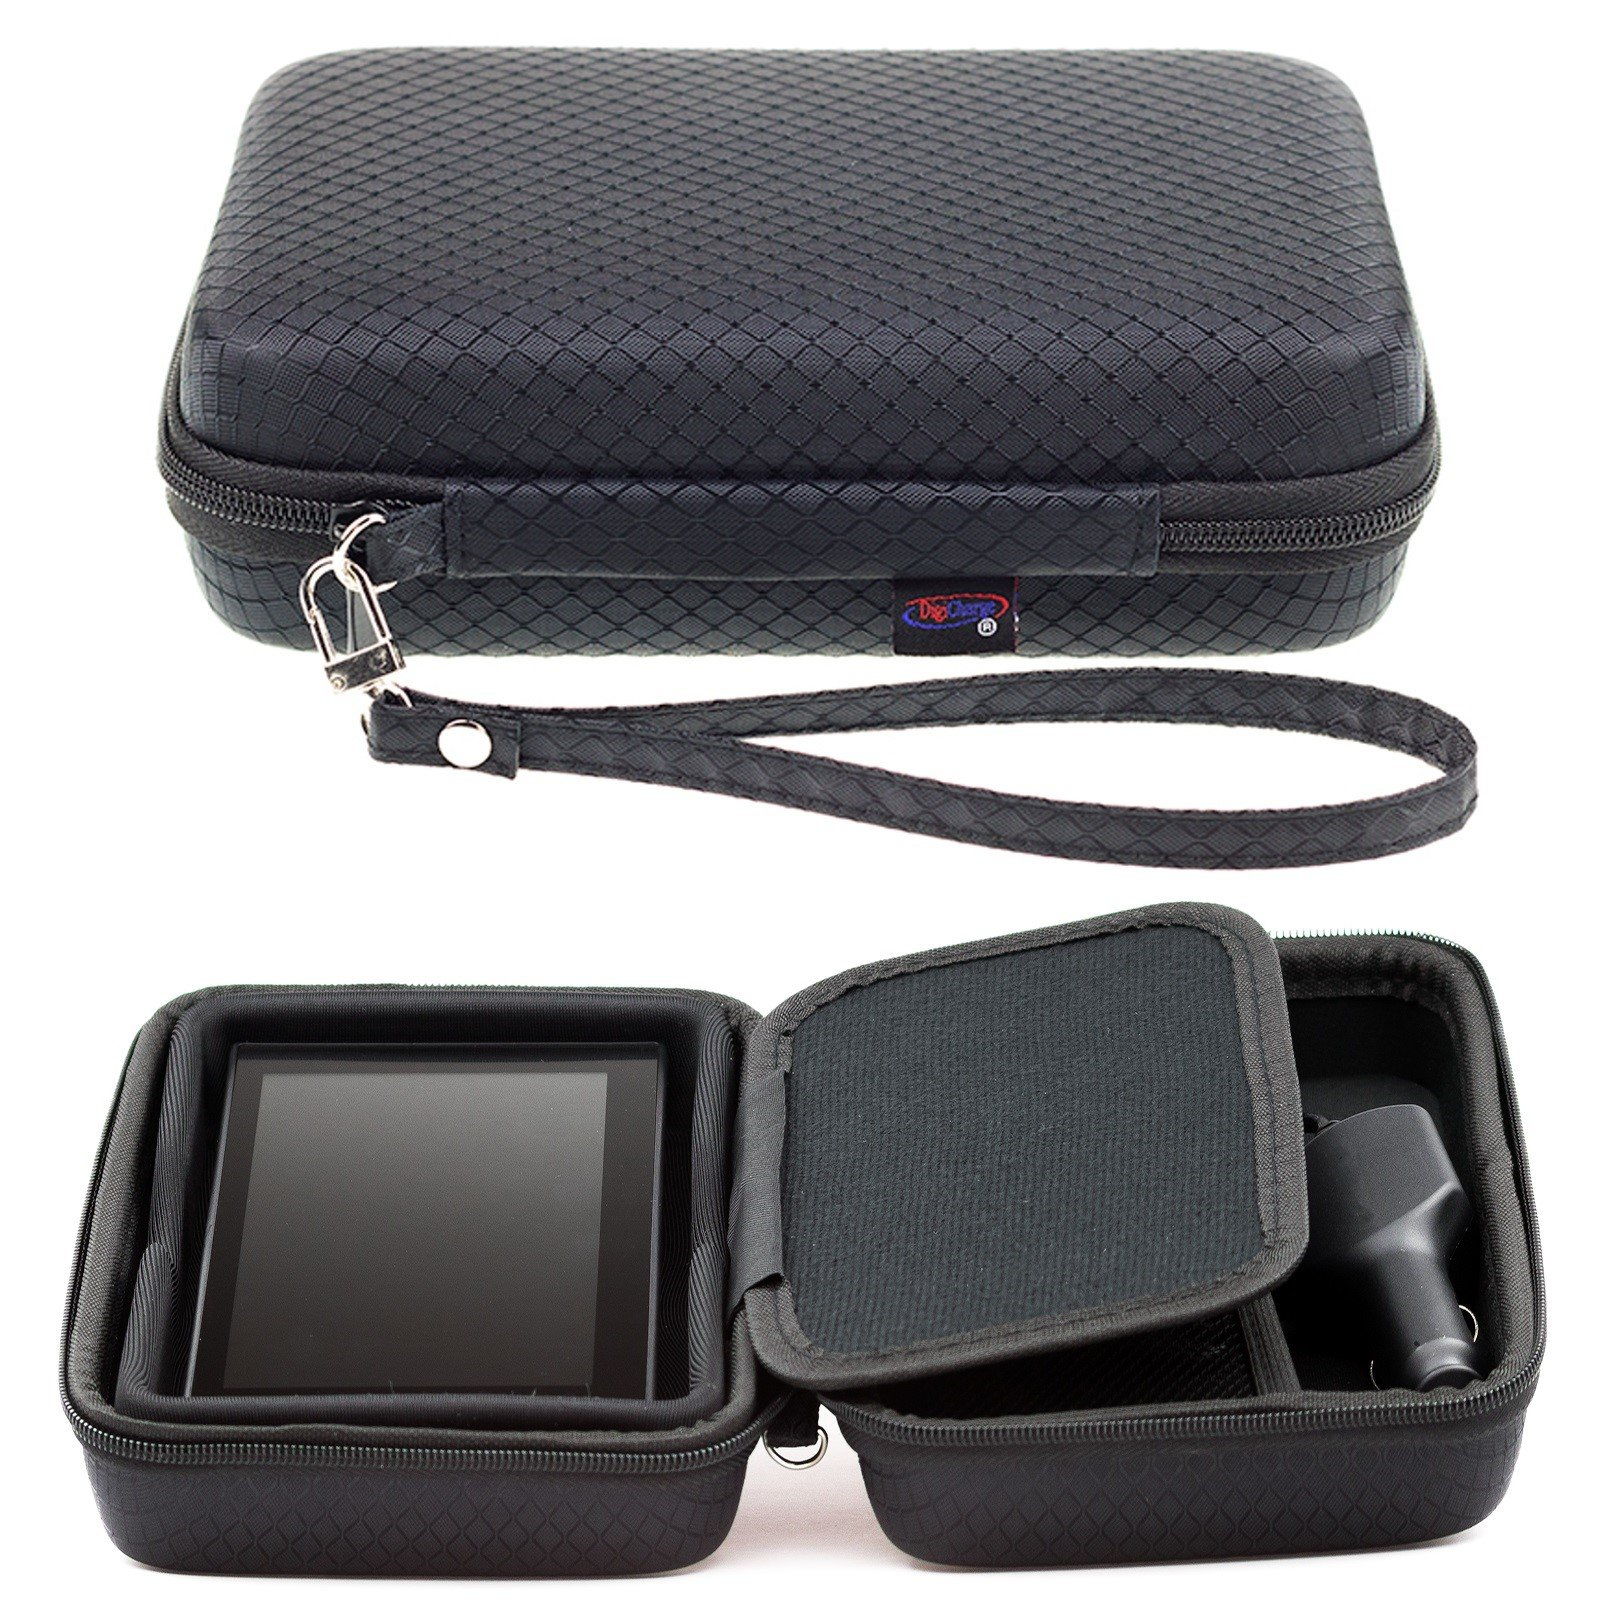 Digicharge® Black Hard Carrying Case For Garmin Drive DriveSmart 60LM 60LMT 61LMT-S 61LM RV 660LMT Nuvi 68 67 68LM 67LM 2639LMT 2639 Fleet 670 660 GPS Sat Nav With Accessory Storage and Lanyard